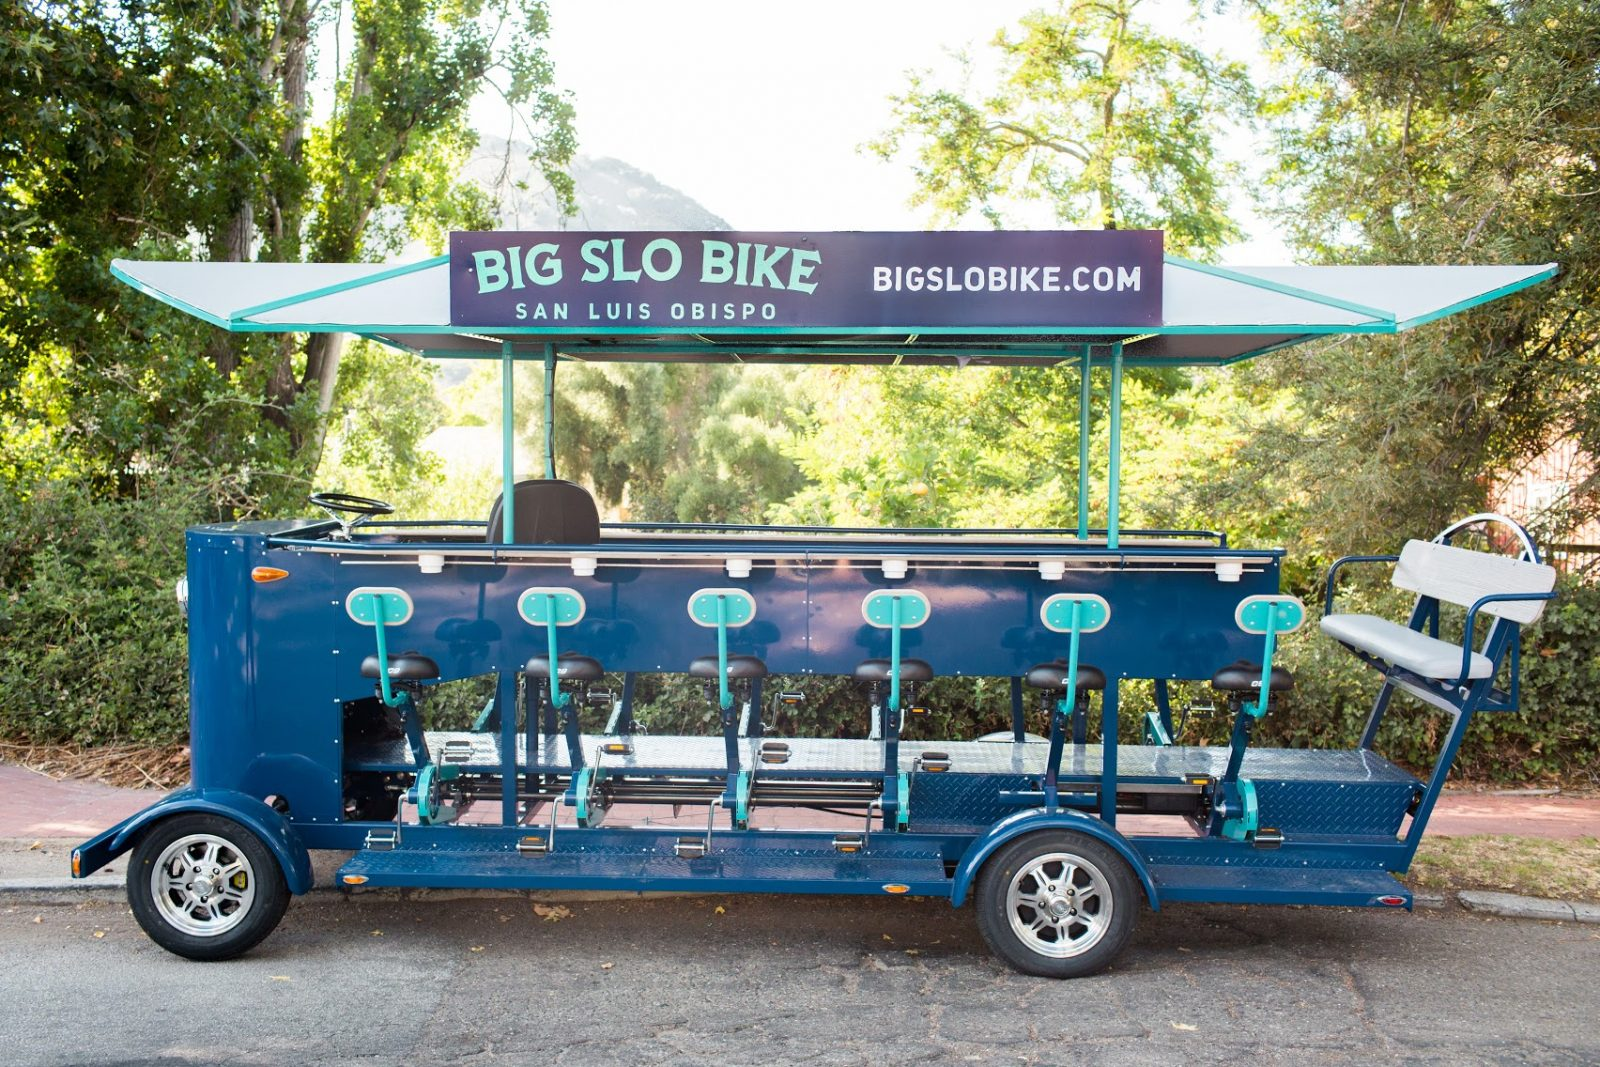 Big SLO BIke